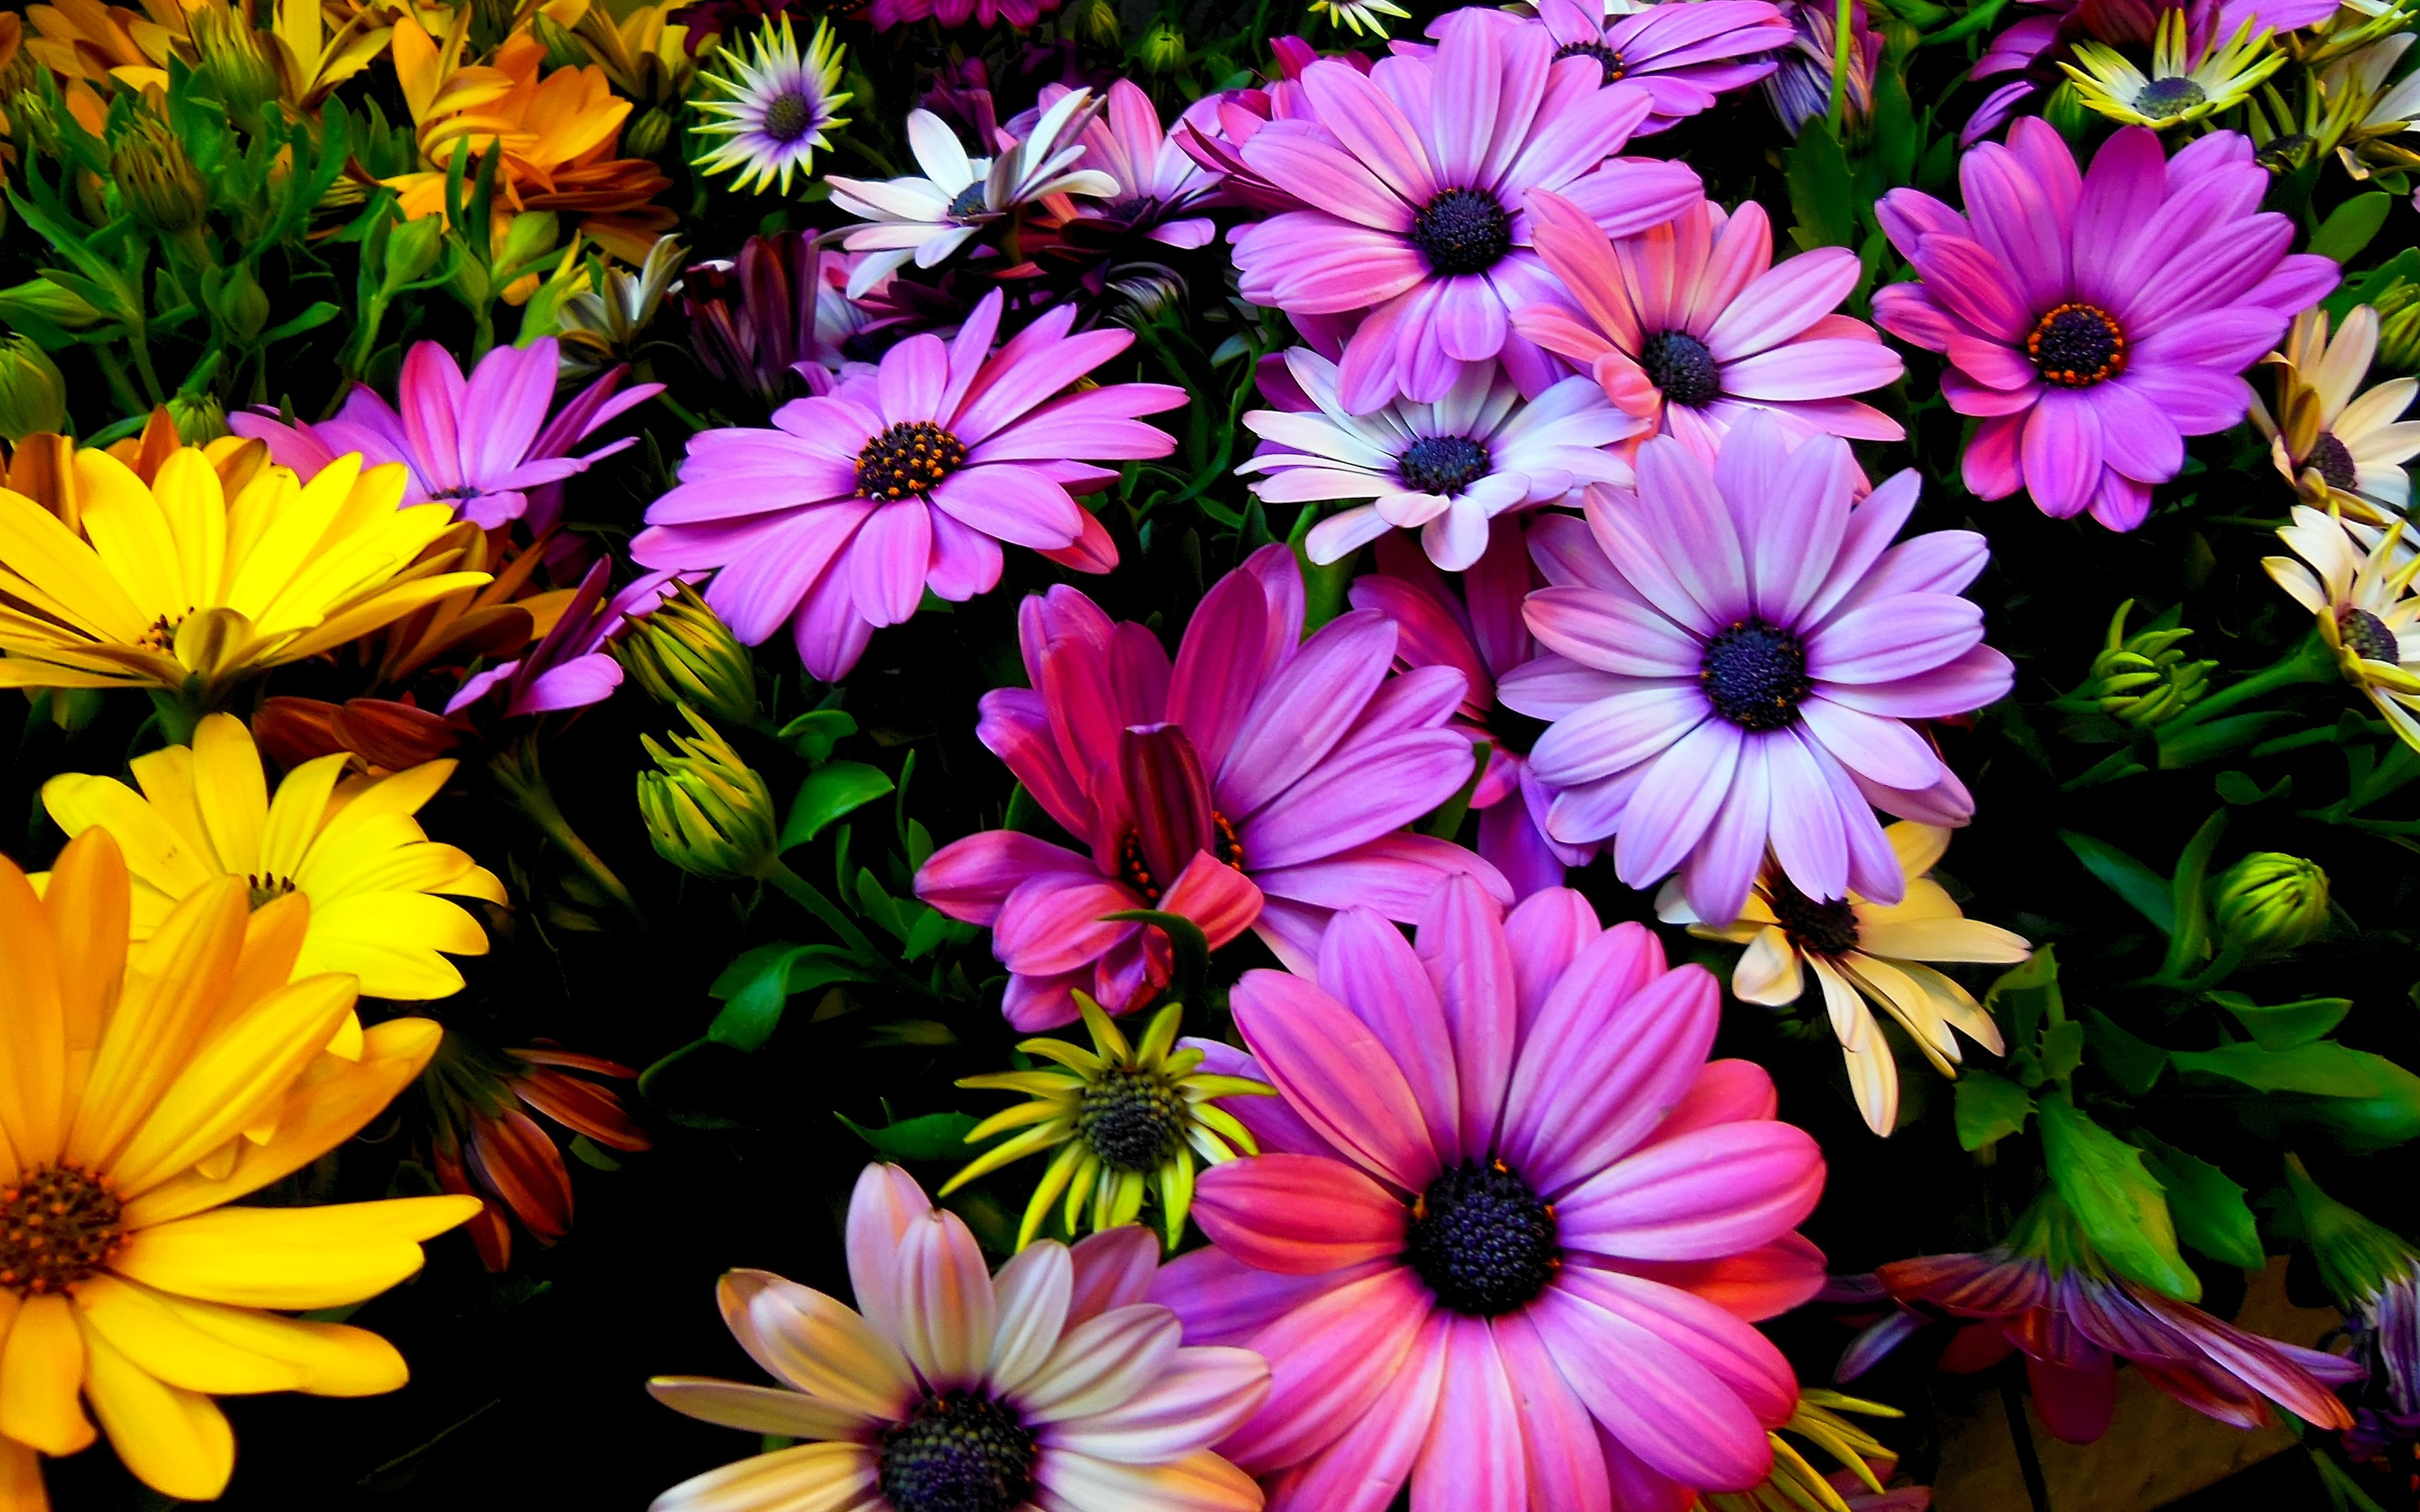 Purple yellow daisy flowers wallpapers in jpg format for free download 360640 38402160 38402400 izmirmasajfo